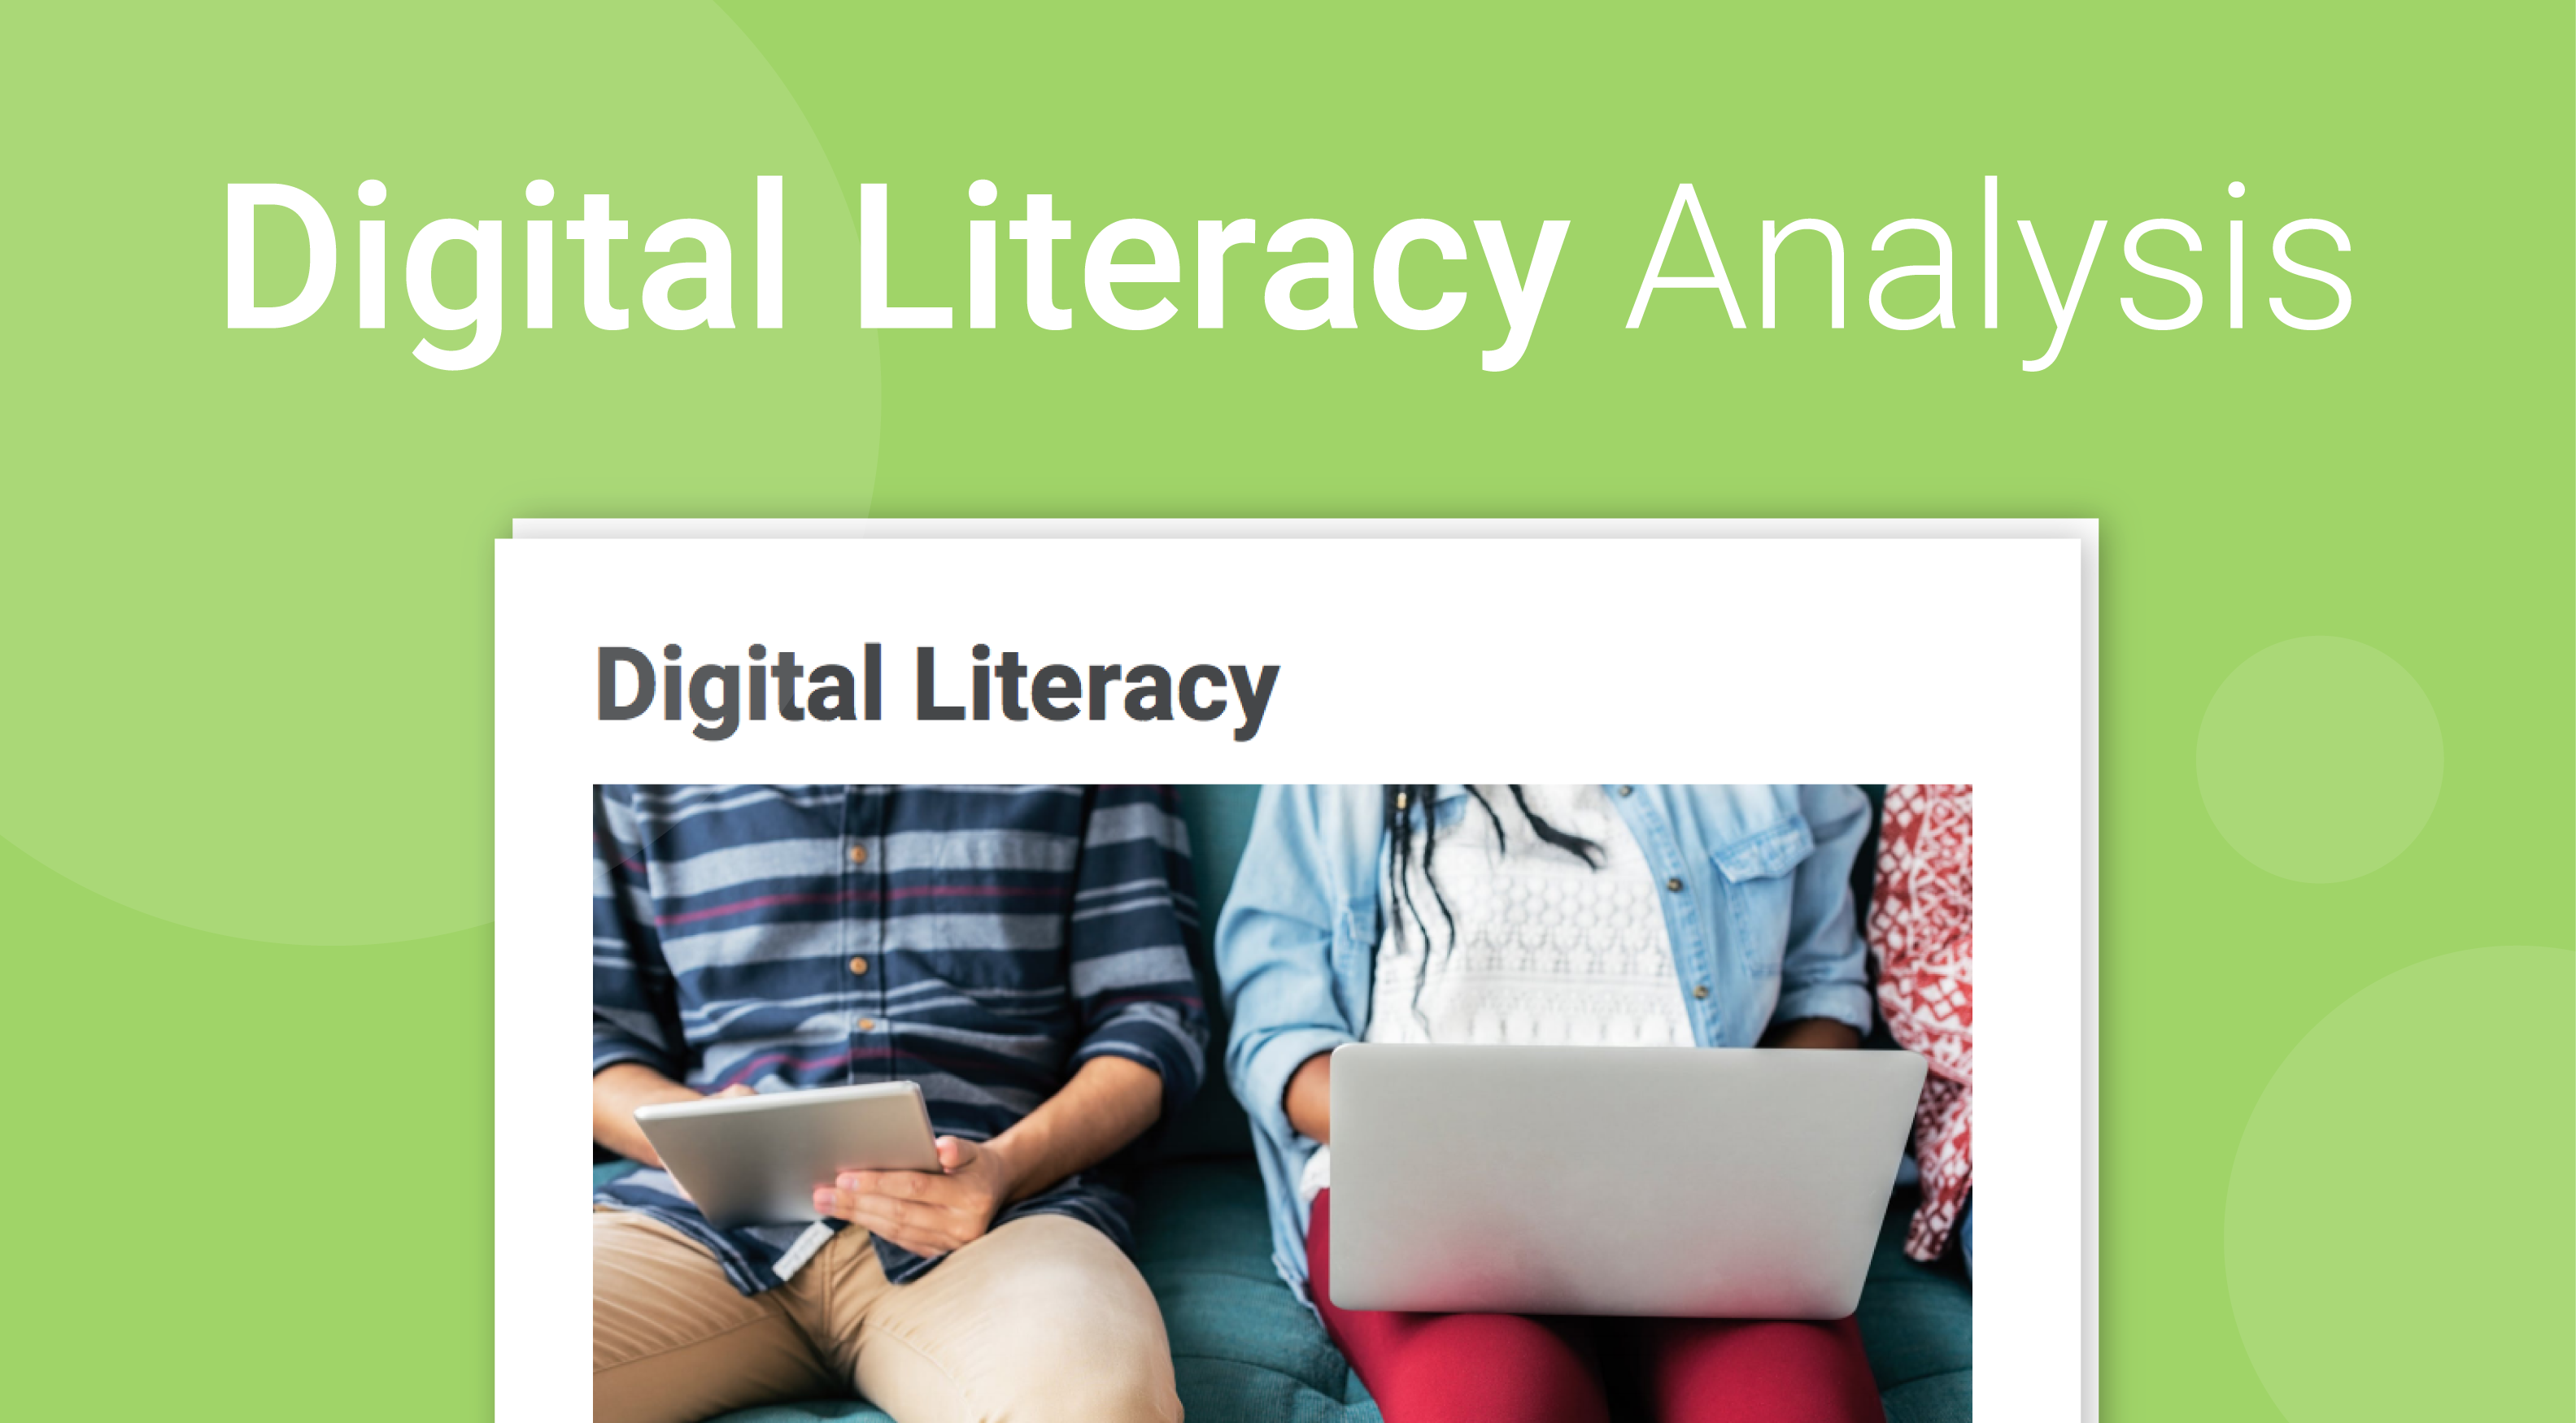 Digital Literacy Analysis